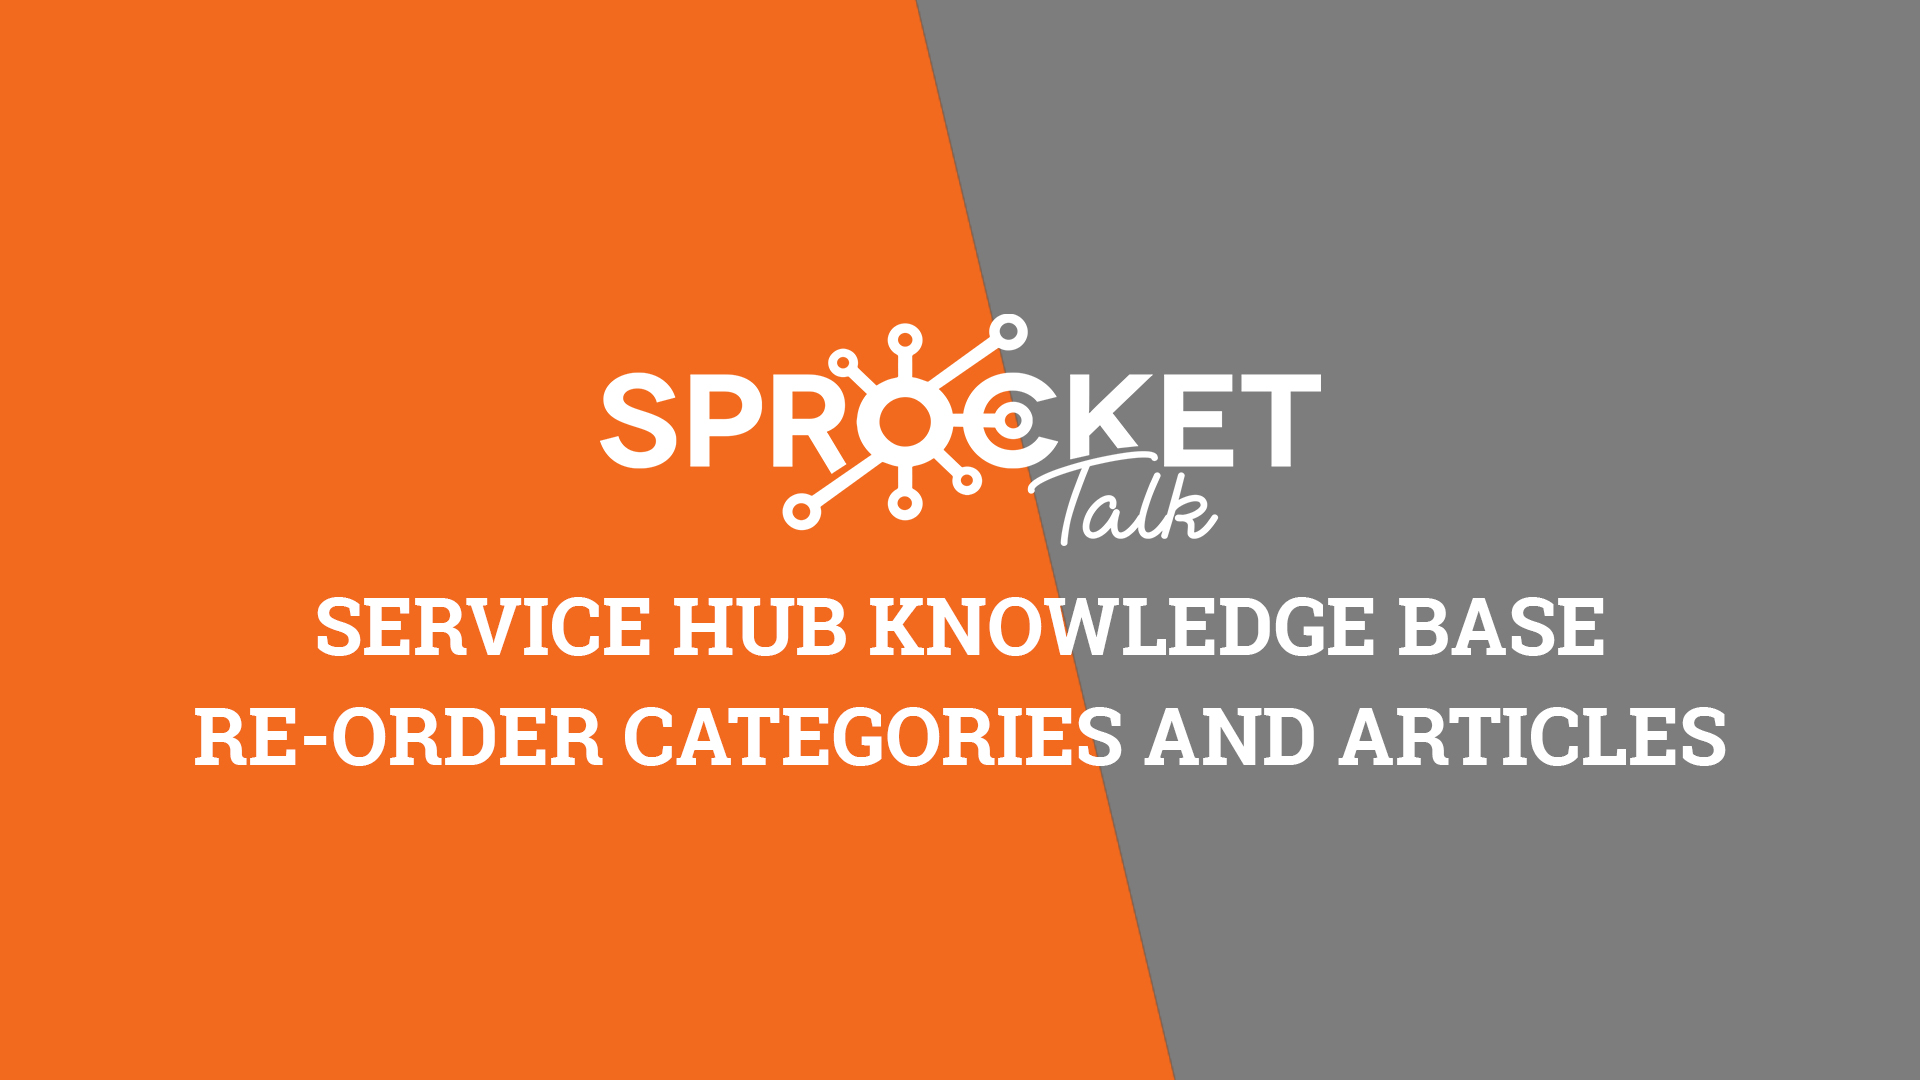 Service Hub Knowledge Base Re-order Categories and Articles